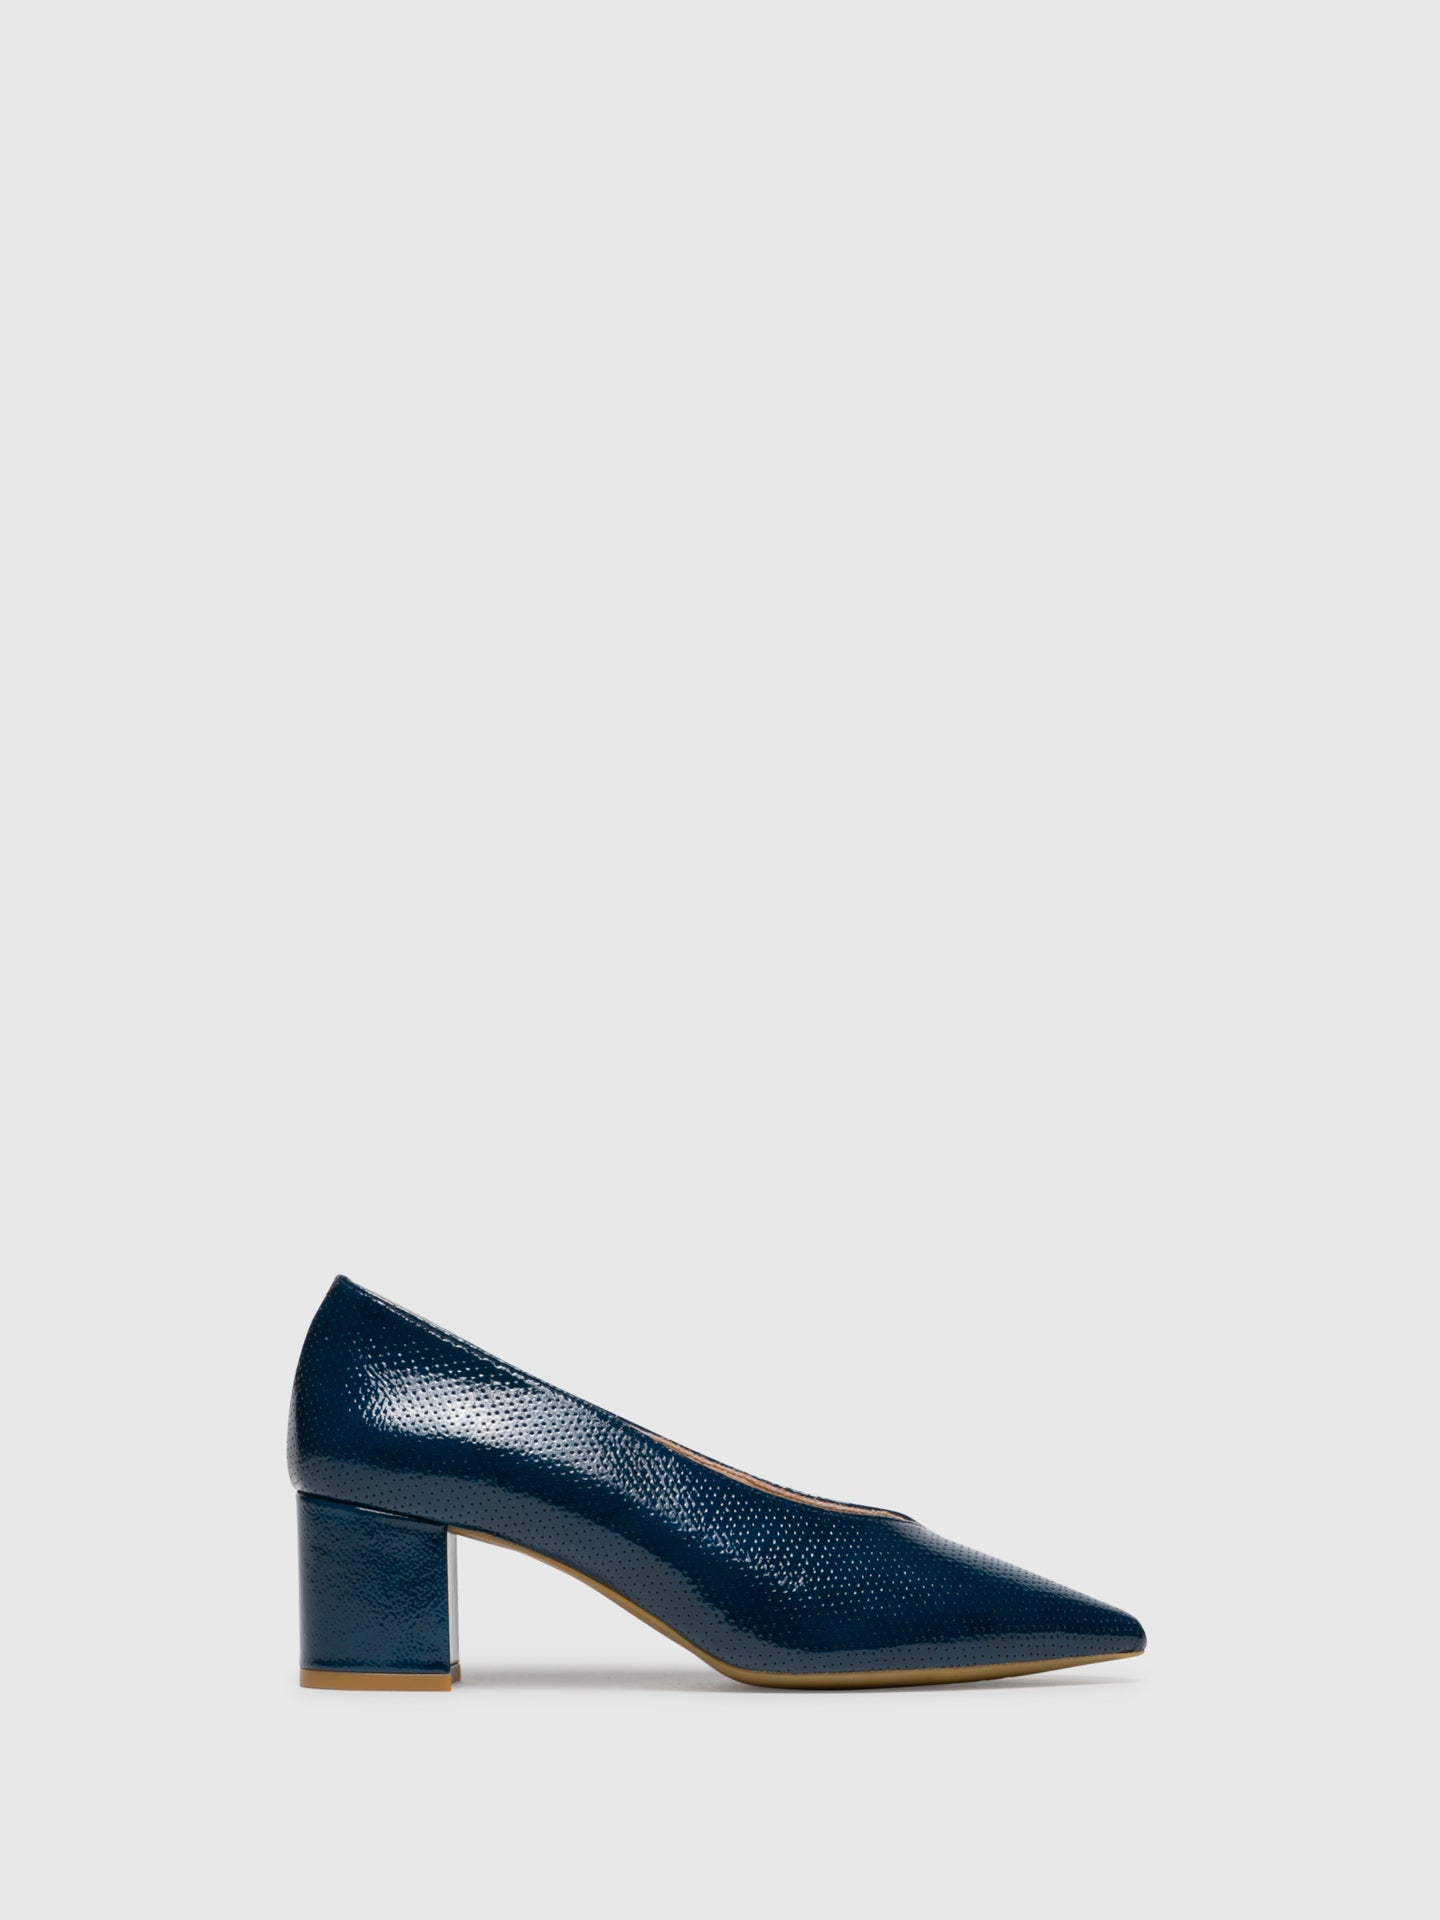 Sofia Costa Blue Pointed Toe Shoes